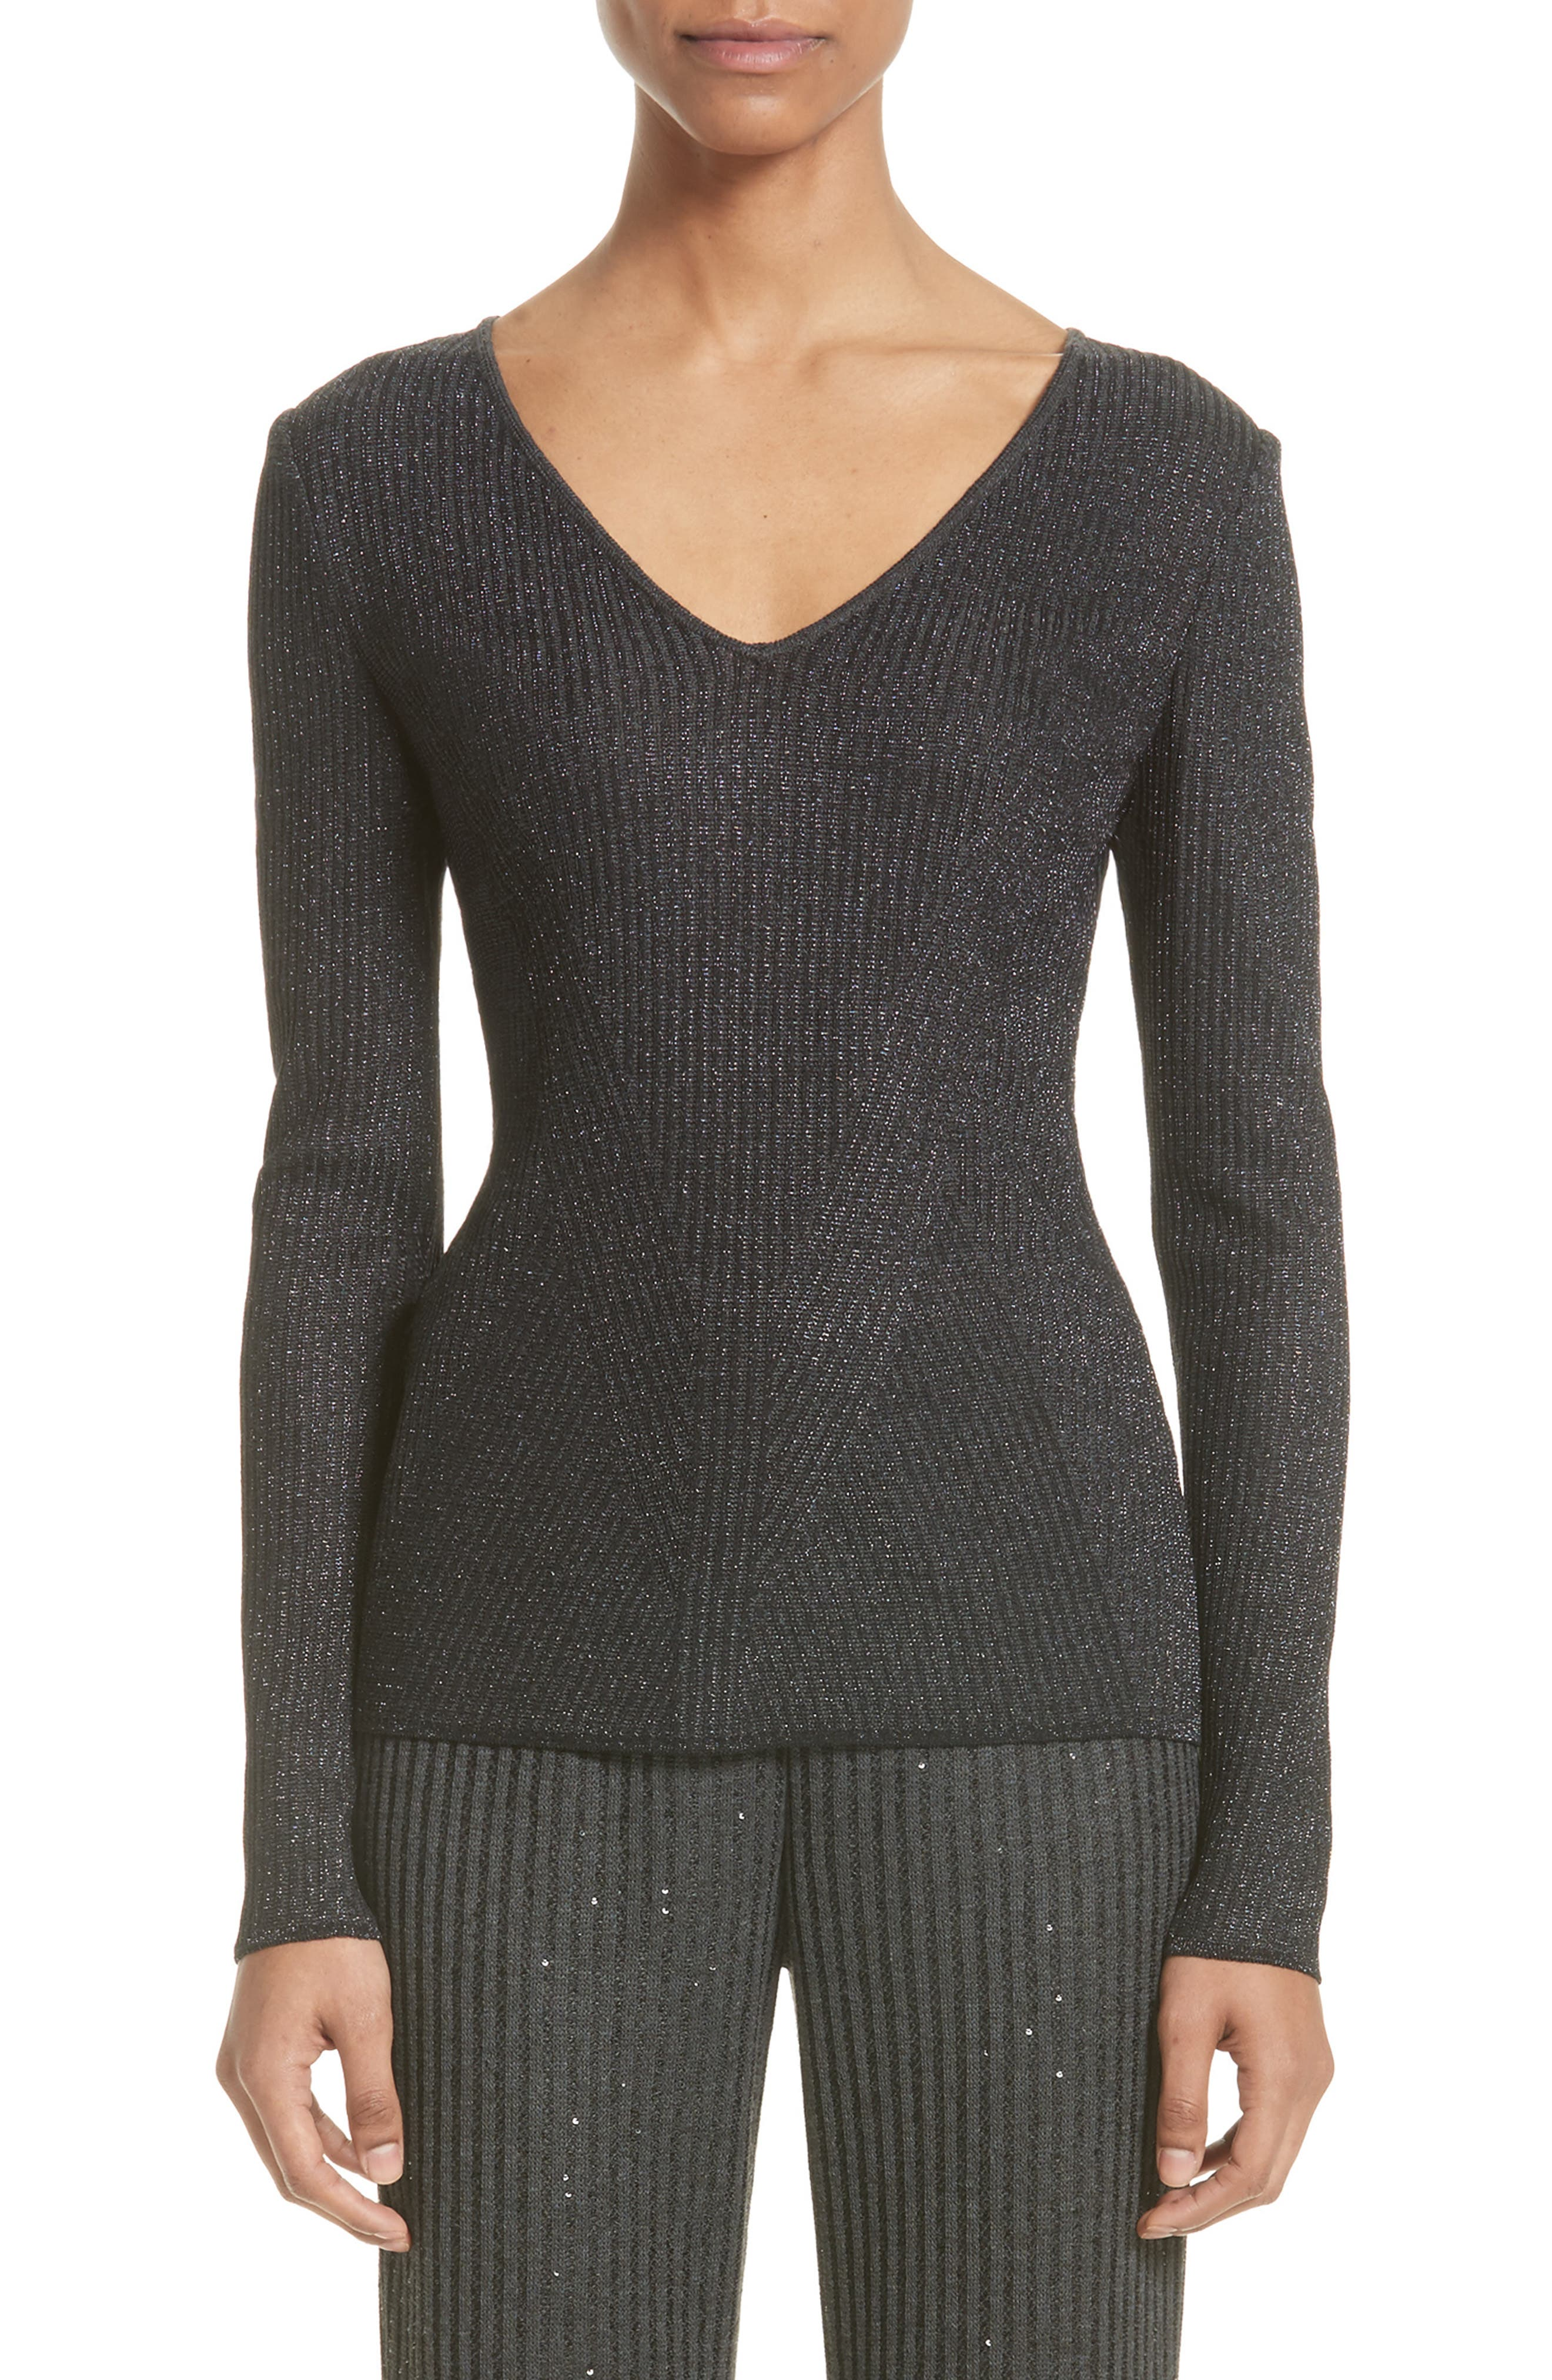 Alternate Image 1 Selected - St. John Collection Engineered Rib Sparkle Knit Sweater